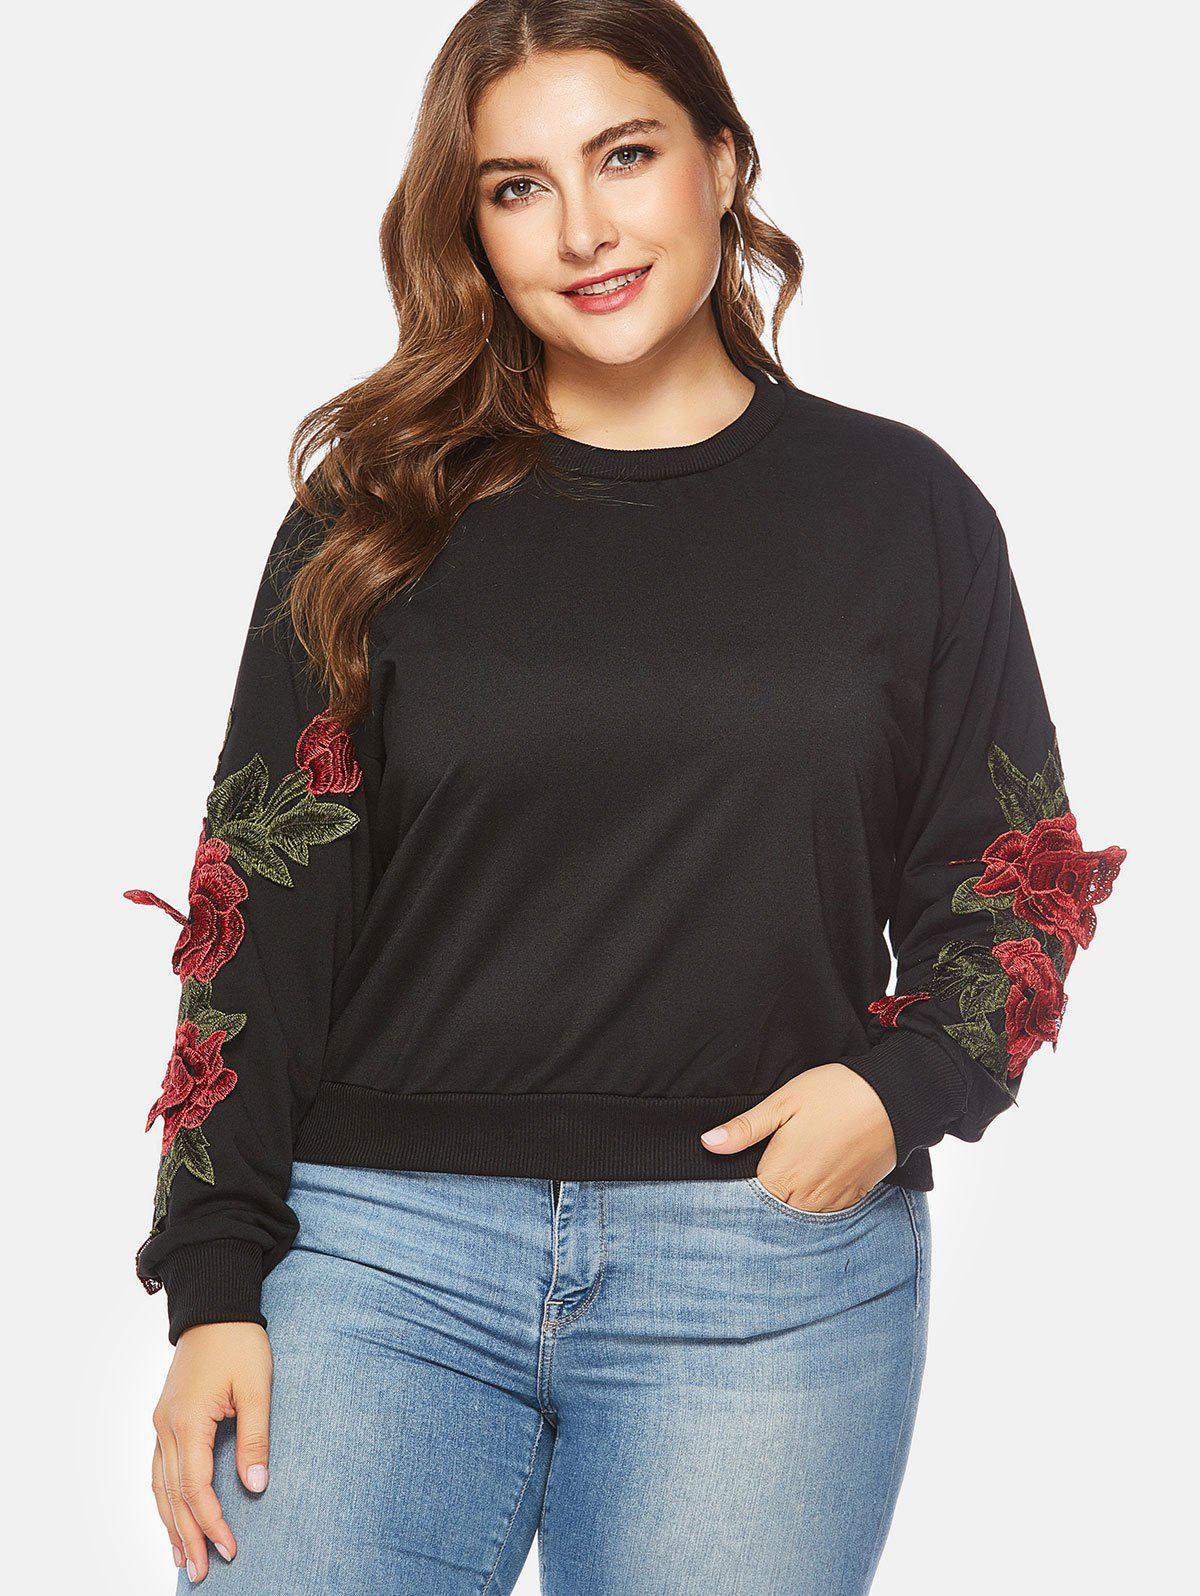 Affordable Applique Long Sleeve Plus Size Sweatshirt